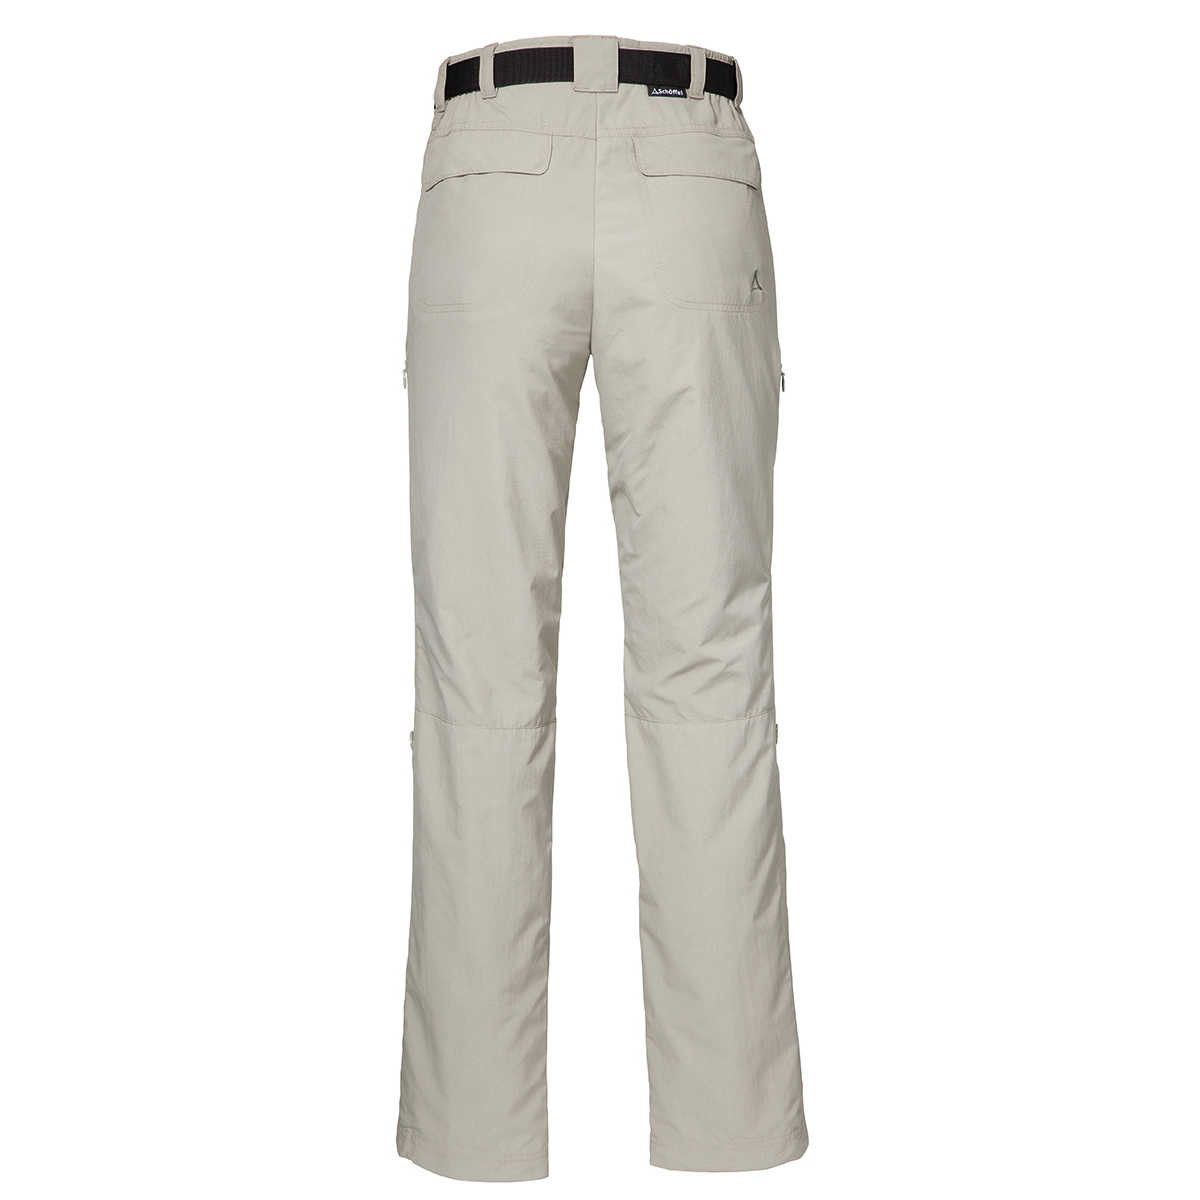 Outdoor Pants L II NOS - Ashes 0